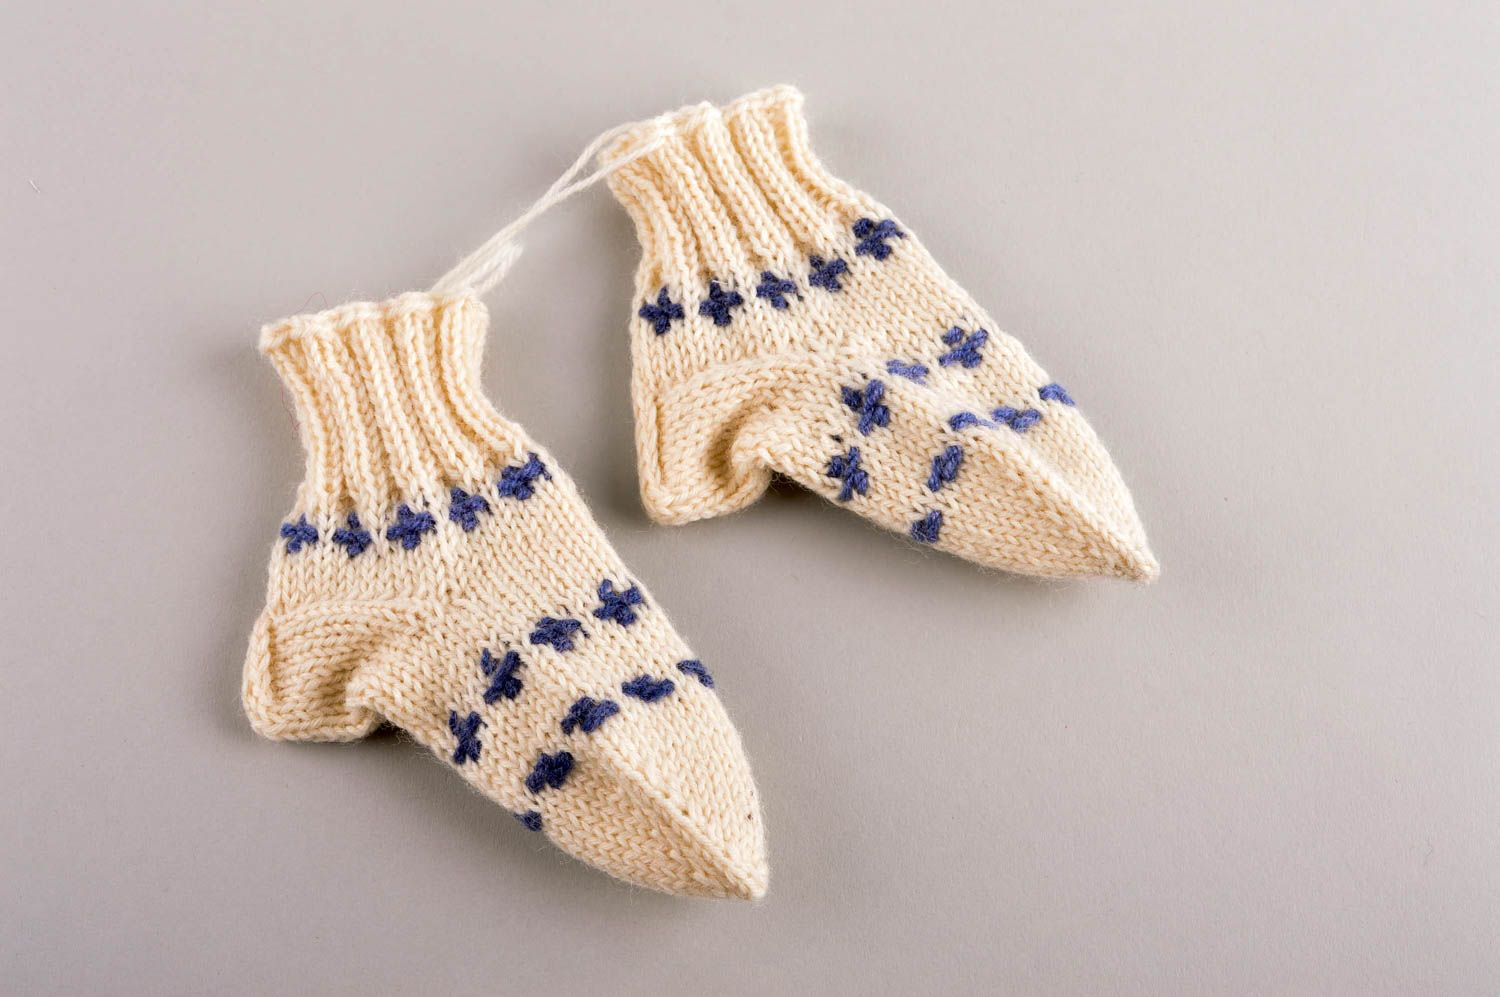 Beautiful handmade knitted socks childrens warm socks accessories for kids - MADEheart.com